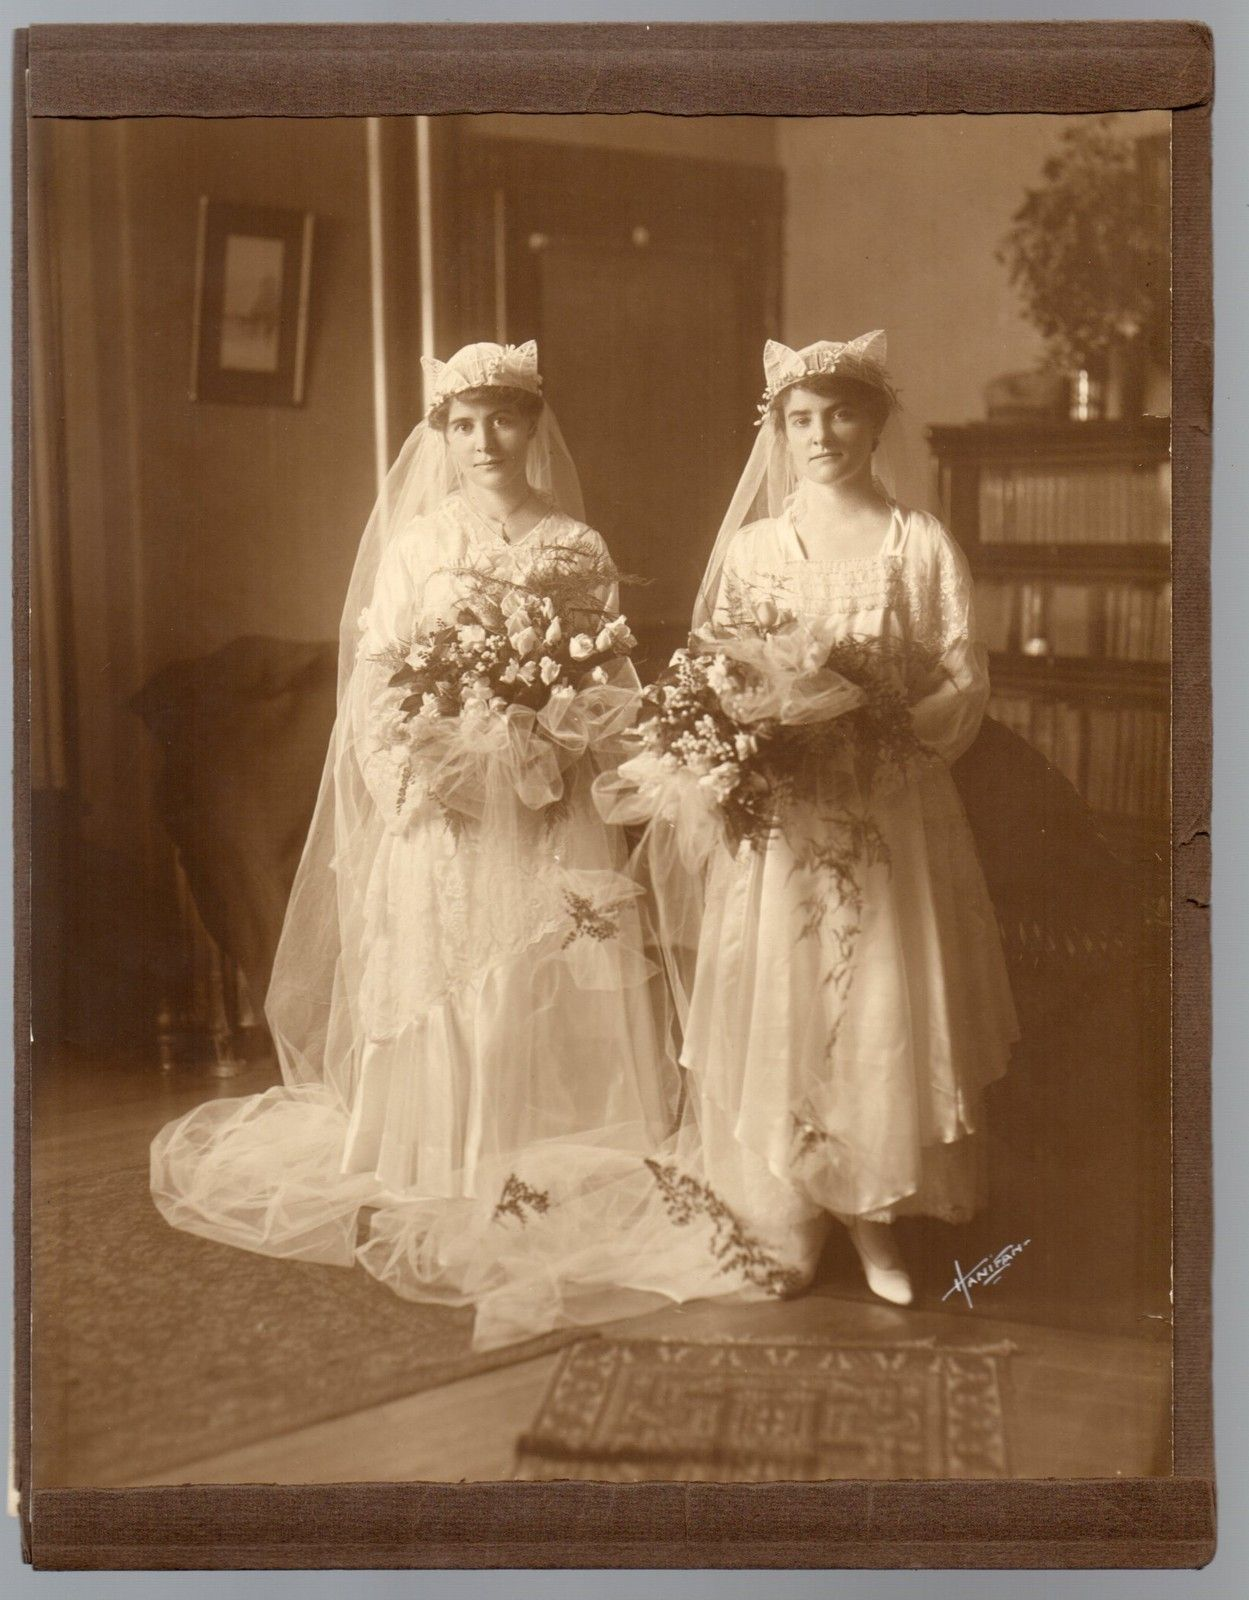 1916 Wedding Photo Al Two Sisters As Brides Double Chico Falls Ma I Lived Near There In Elementary School